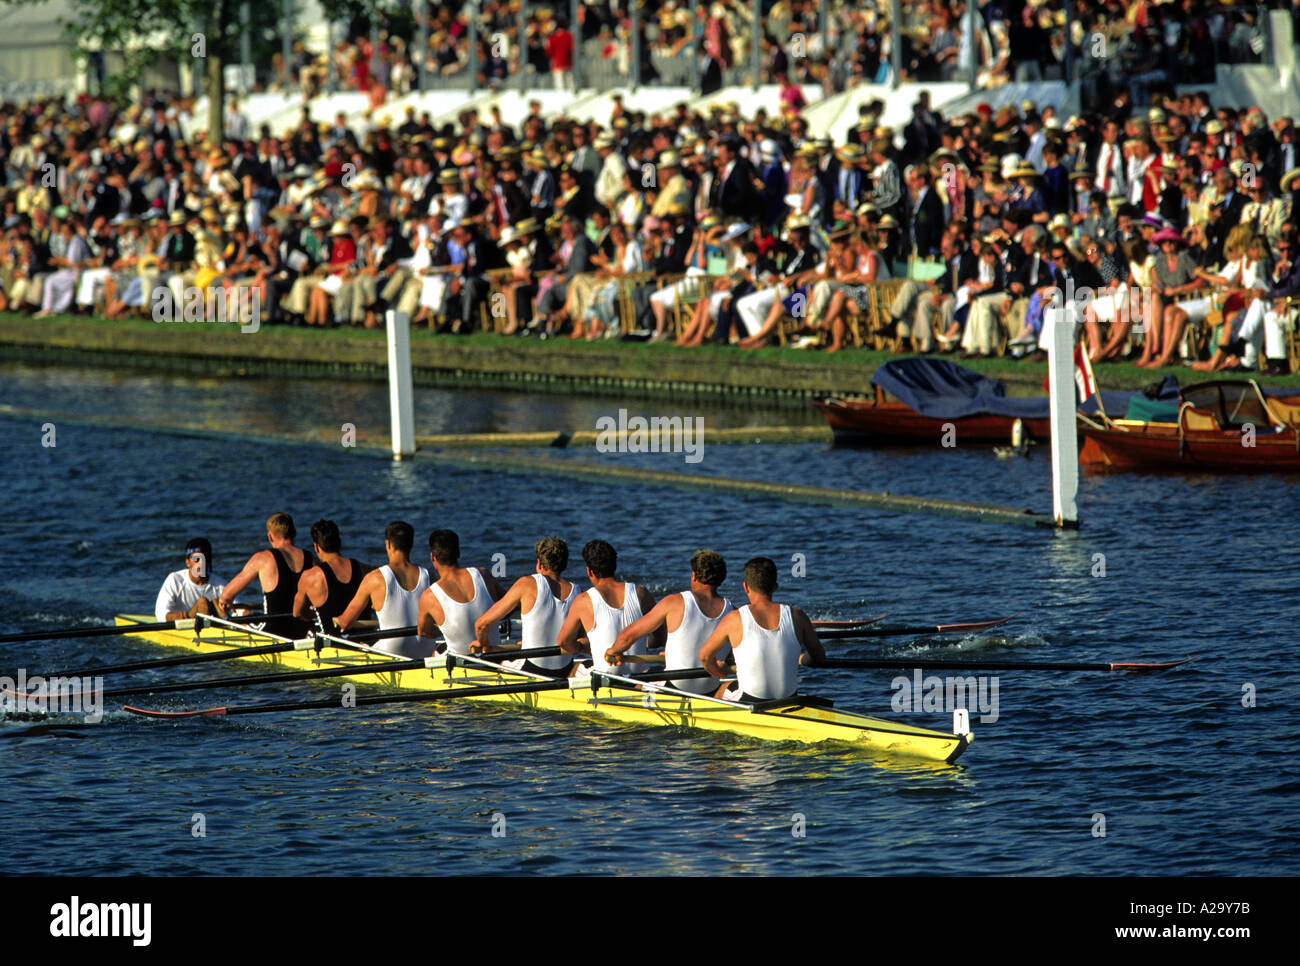 The view from behind of a men s coxed Eight rowing past the crowd during a race at the Henley Royal Regatta - Stock Image